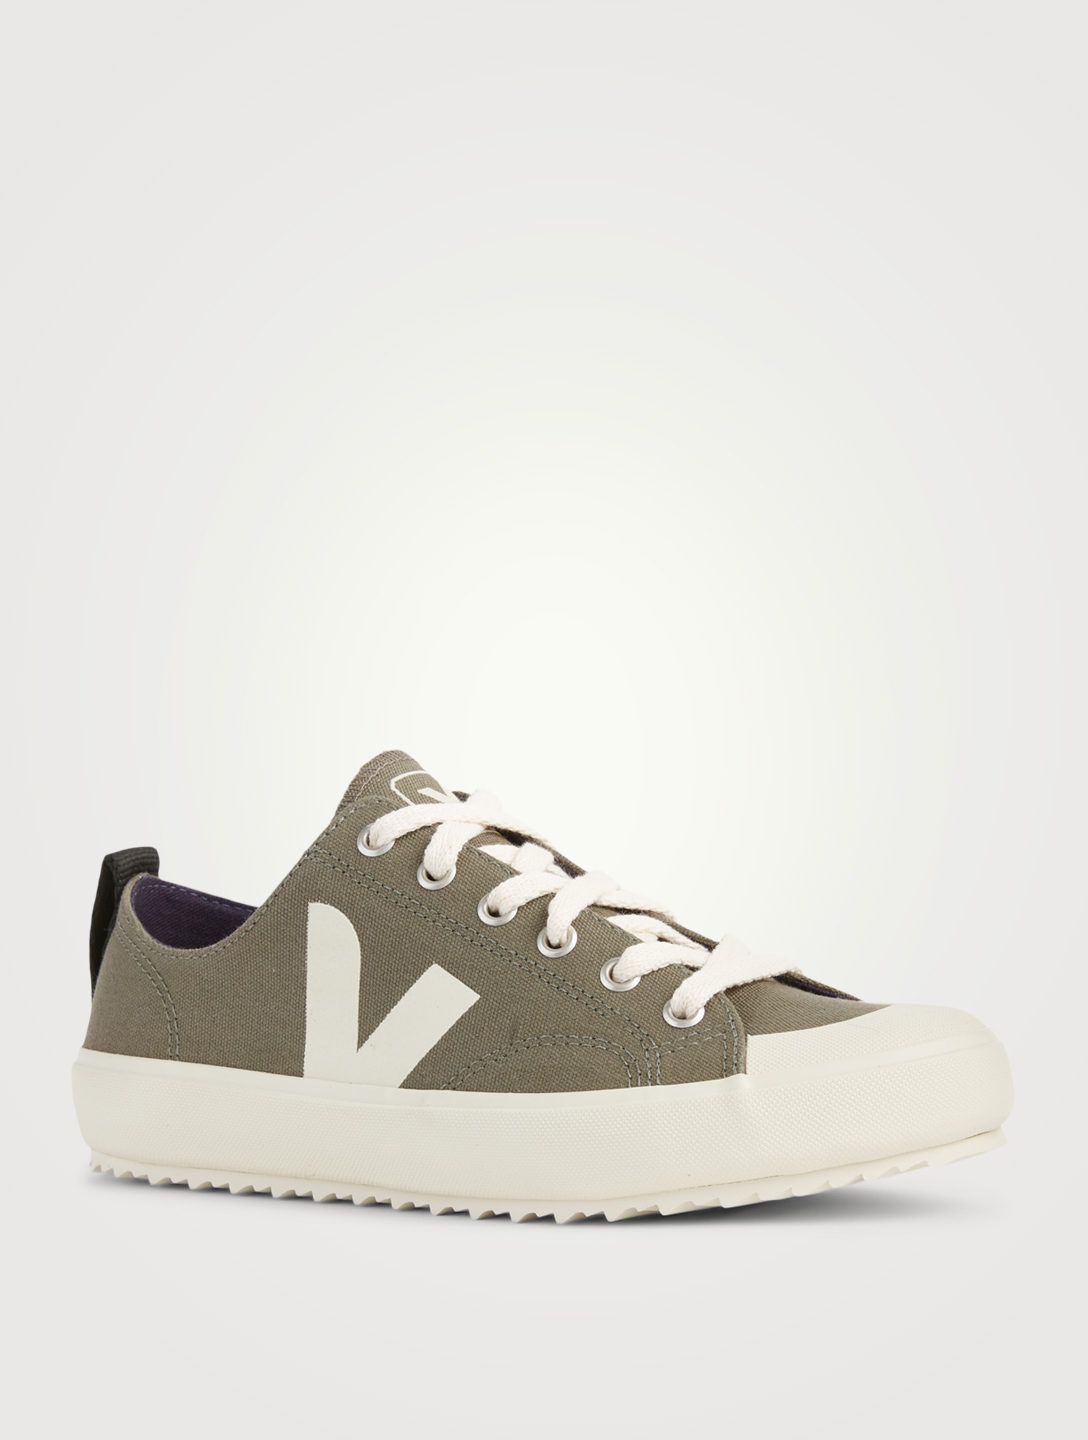 VEJA Nova Canvas Sneakers Women's Green